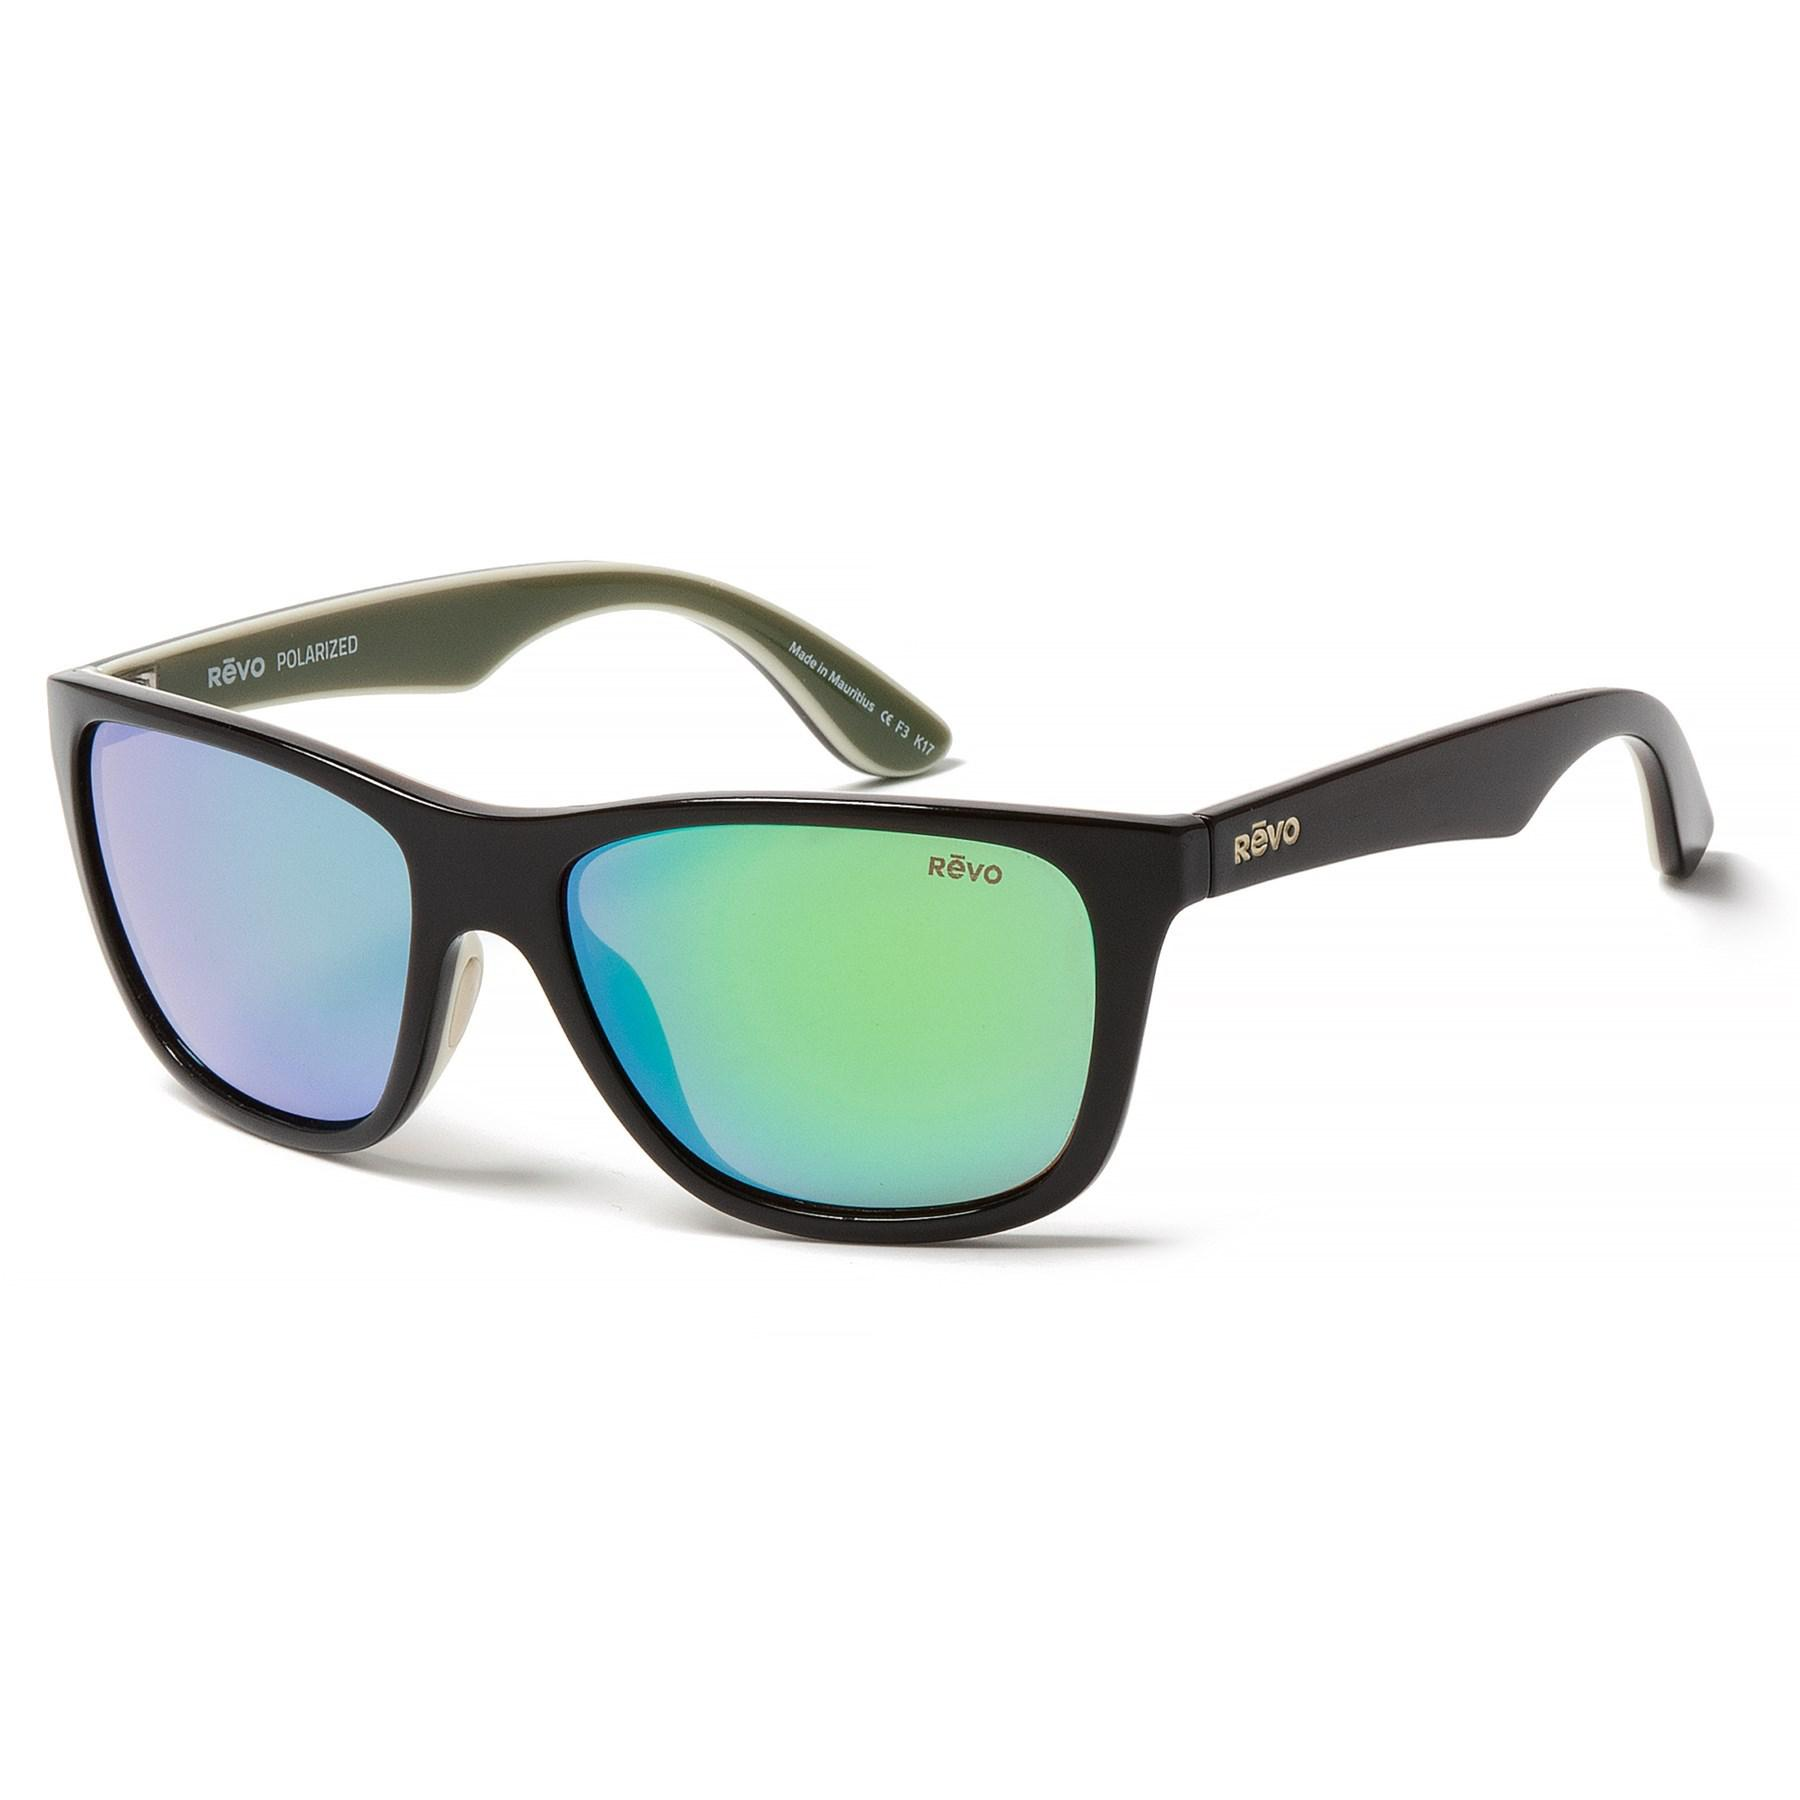 f8049b0c2cb Lyst - Revo Otis Sunglasses in Green for Men